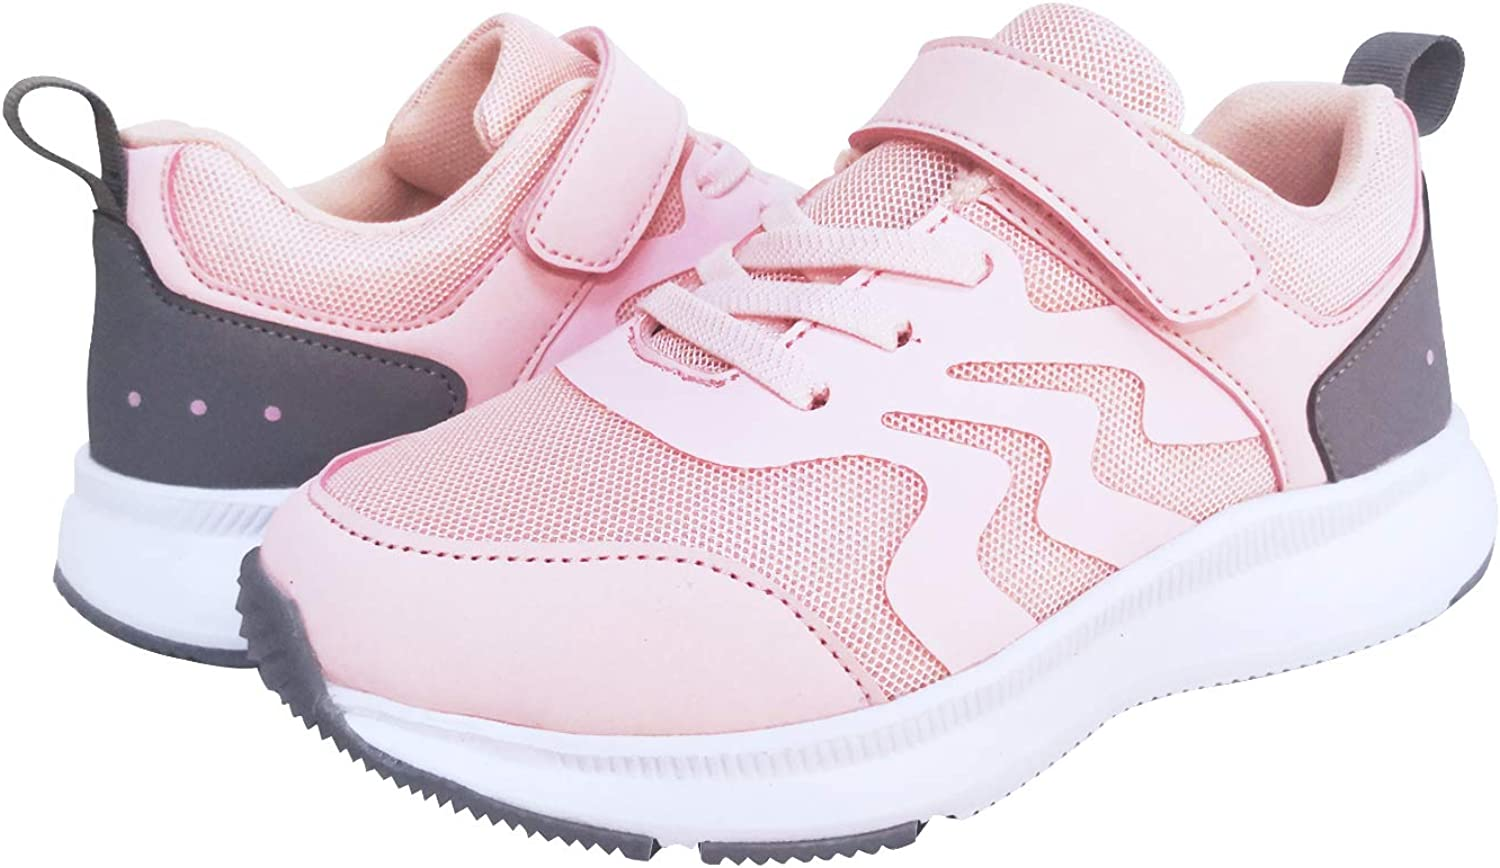 DINDRE Boys Girls Sneakers Kids Athletic Running Shoes Breathable Strap Lightweight Non-Slip Walking Shoe for Outdoor Sport School